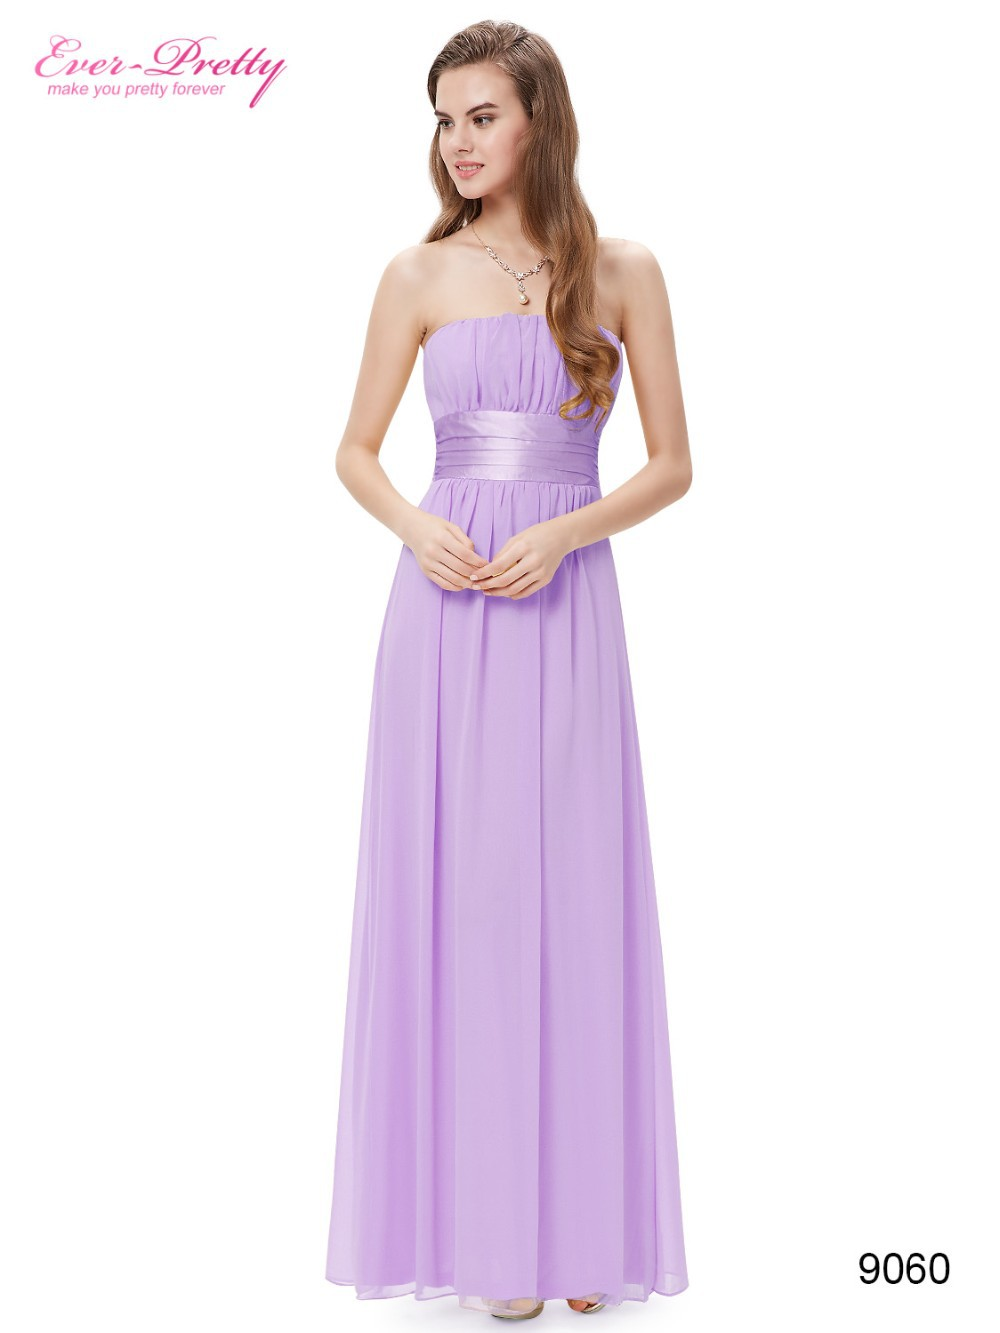 Long Bridesmaid Dress Sexy Chiffon Bow Coral Bridesmaid Dress 2016 HE09060YL Wedding Party Dress